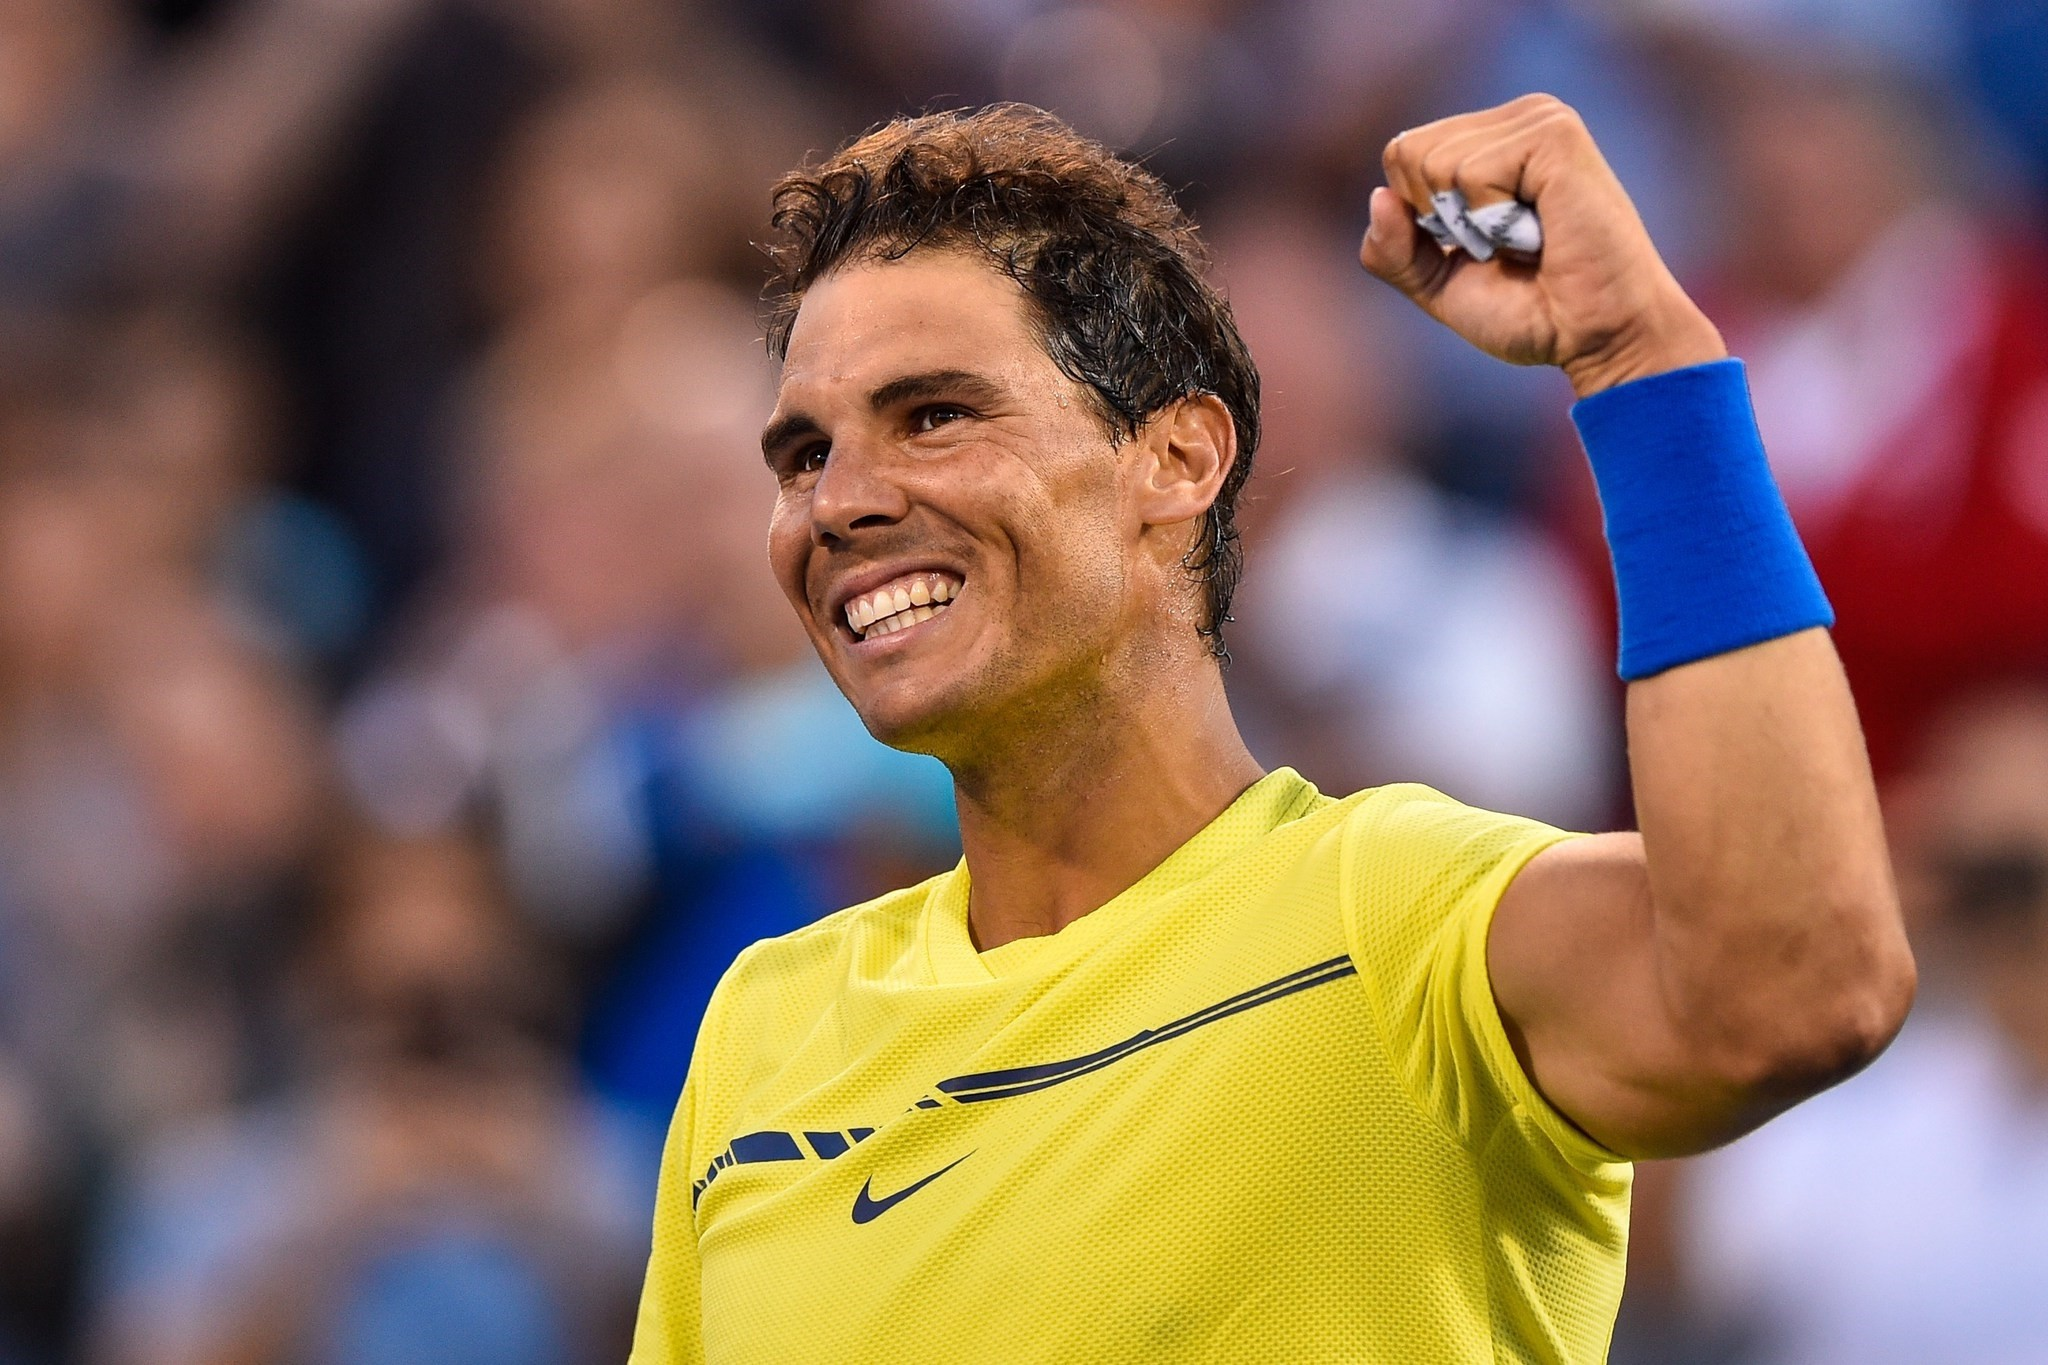 Rafael Nadal of Spain celebrates his victory over Borna Coric of Croatia on August 9, 2017 in Montreal, Canada. (AFP Photo)